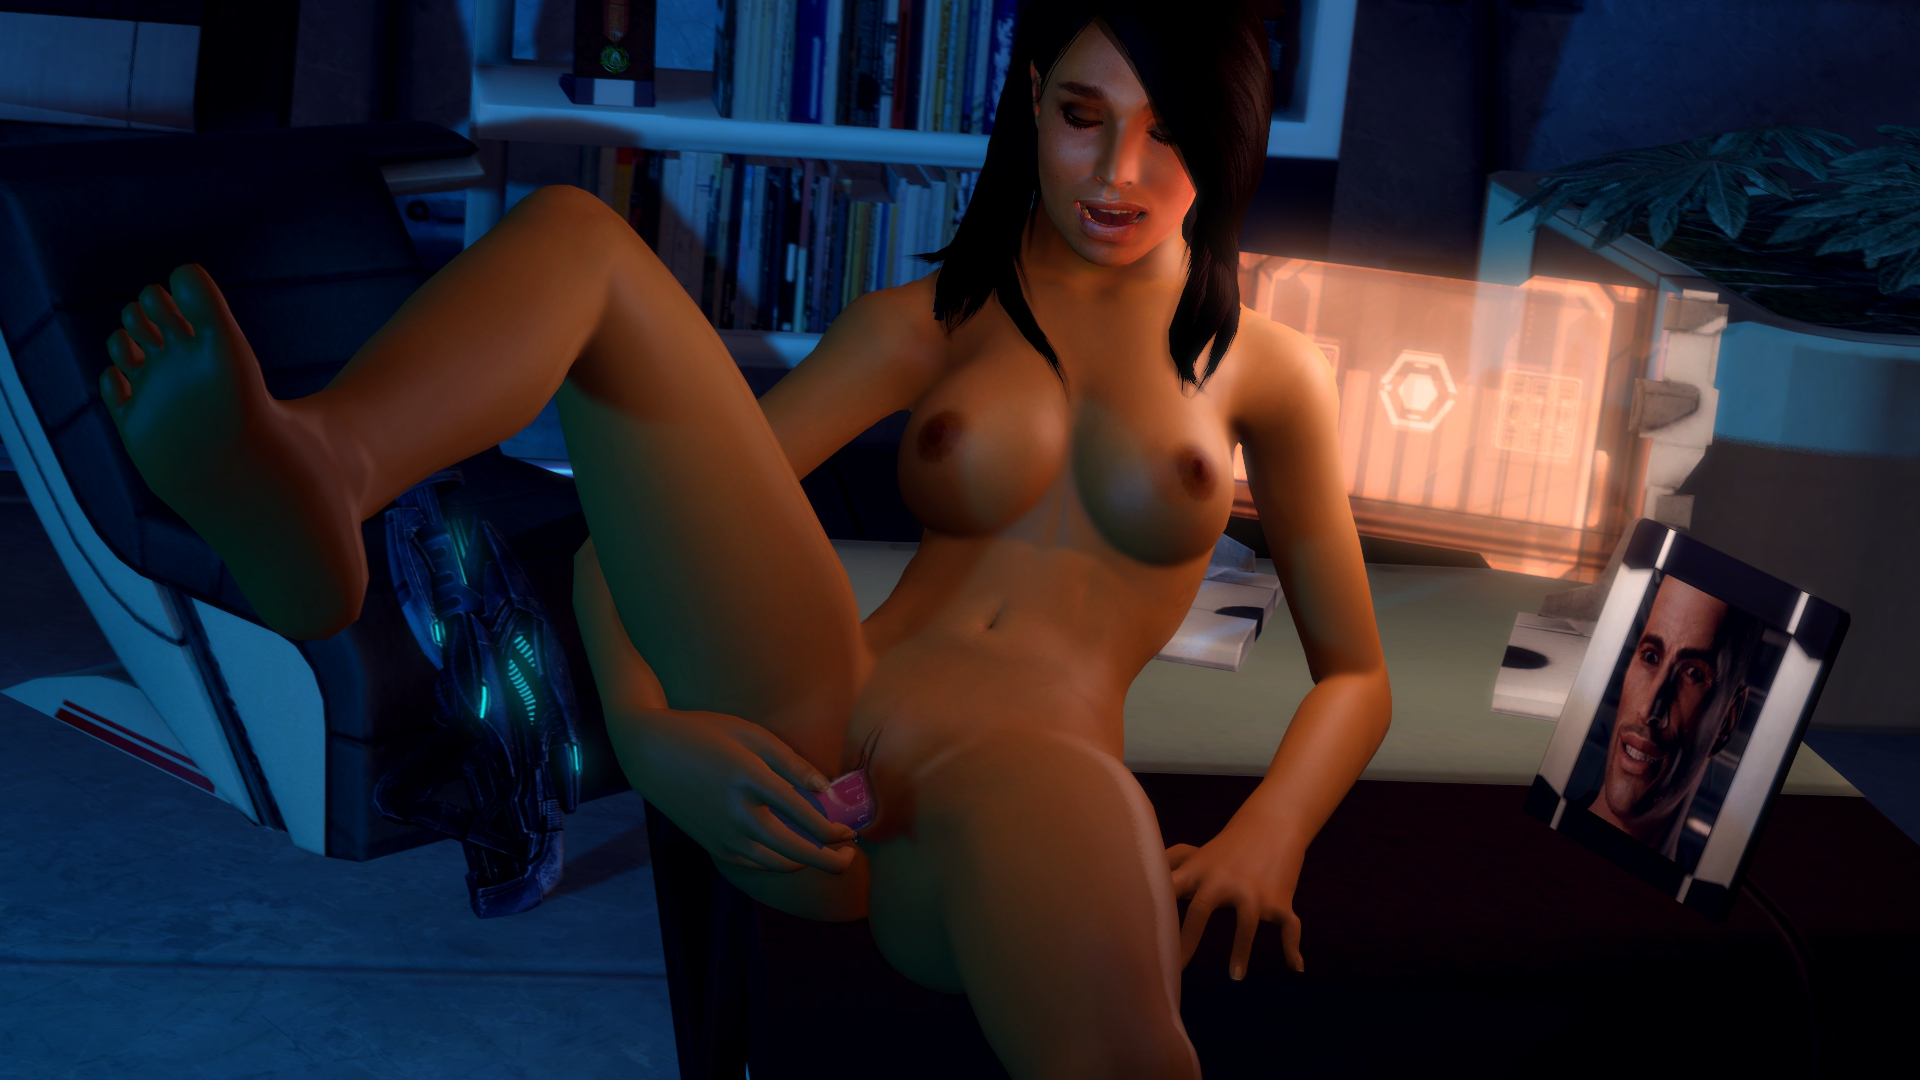 Mass effect porn mods erotic galleries